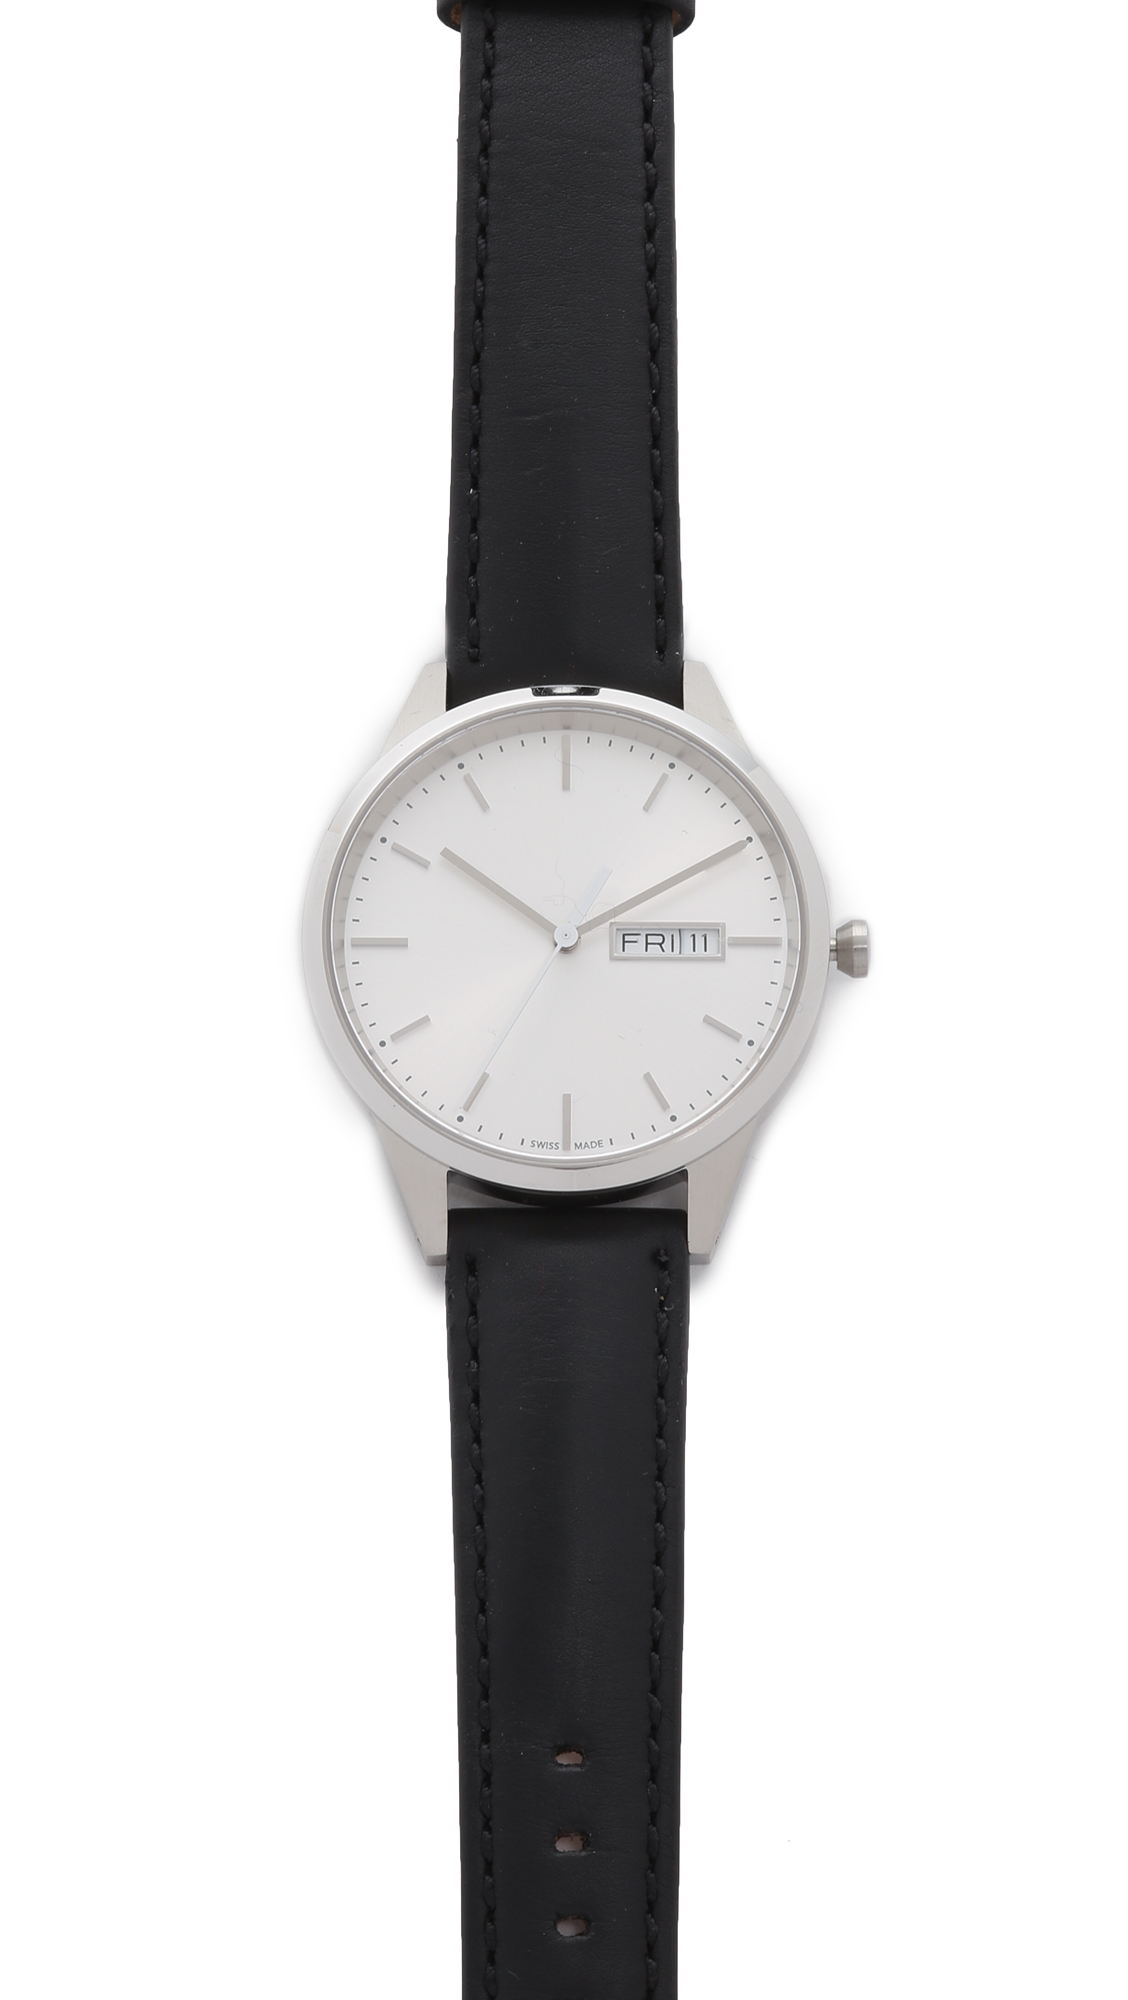 Uniform Wares C40 Brushed Steel Watch